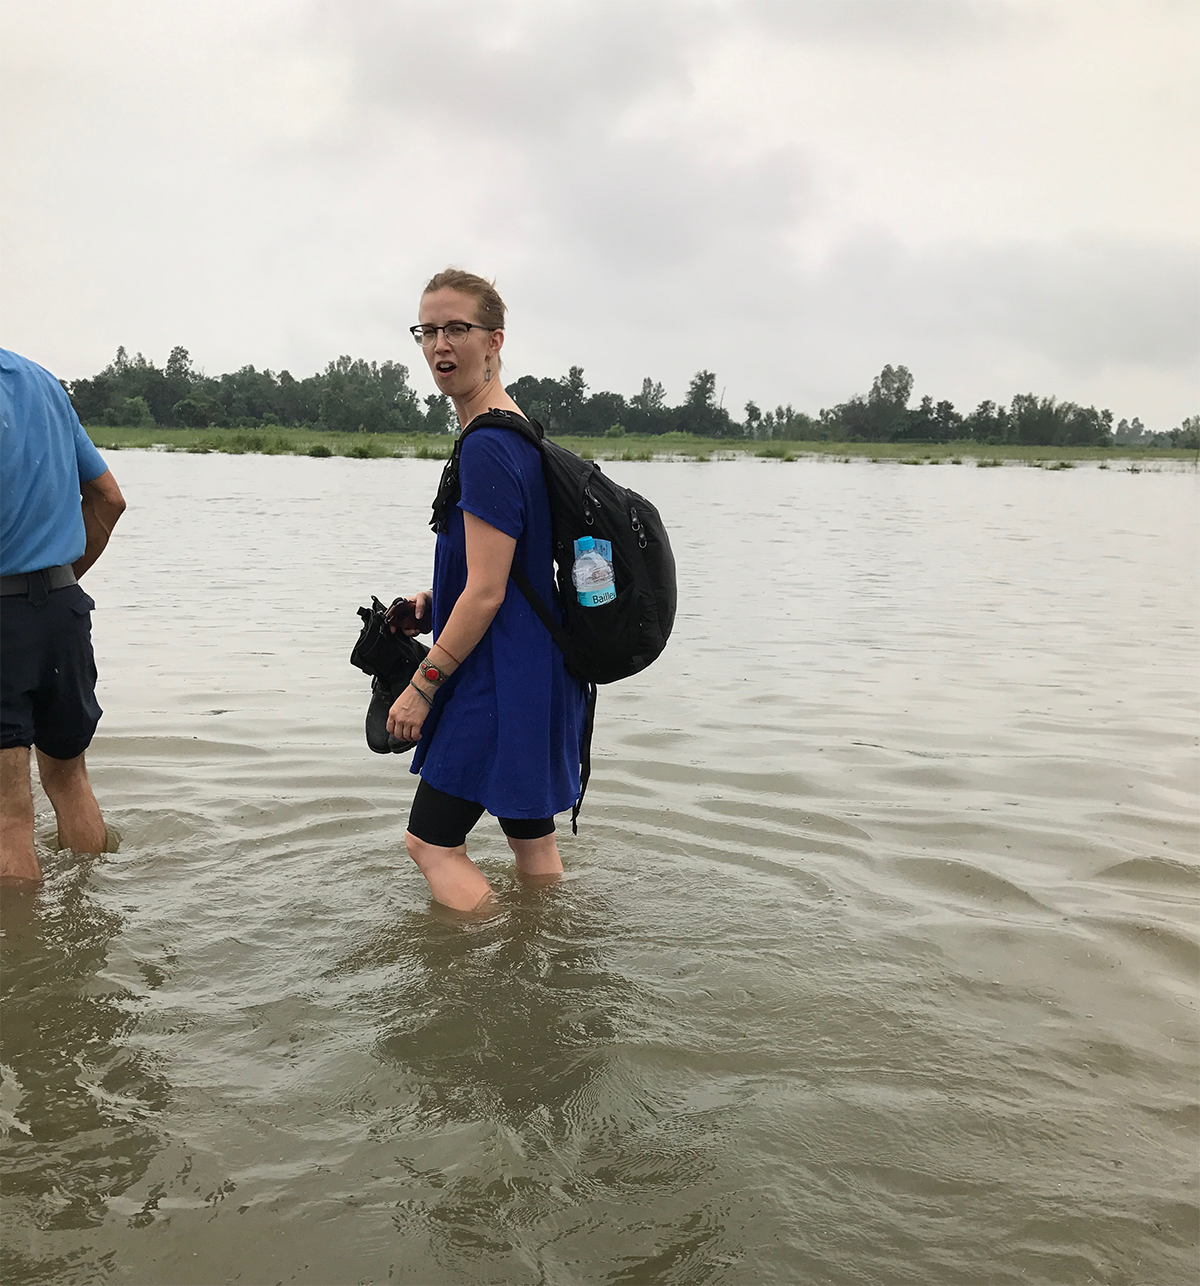 Blanche Greene-Cramer, DrPH, MPH, EIS Class of 2016, wades through flood waters. Photo Credit: Endang Handzel